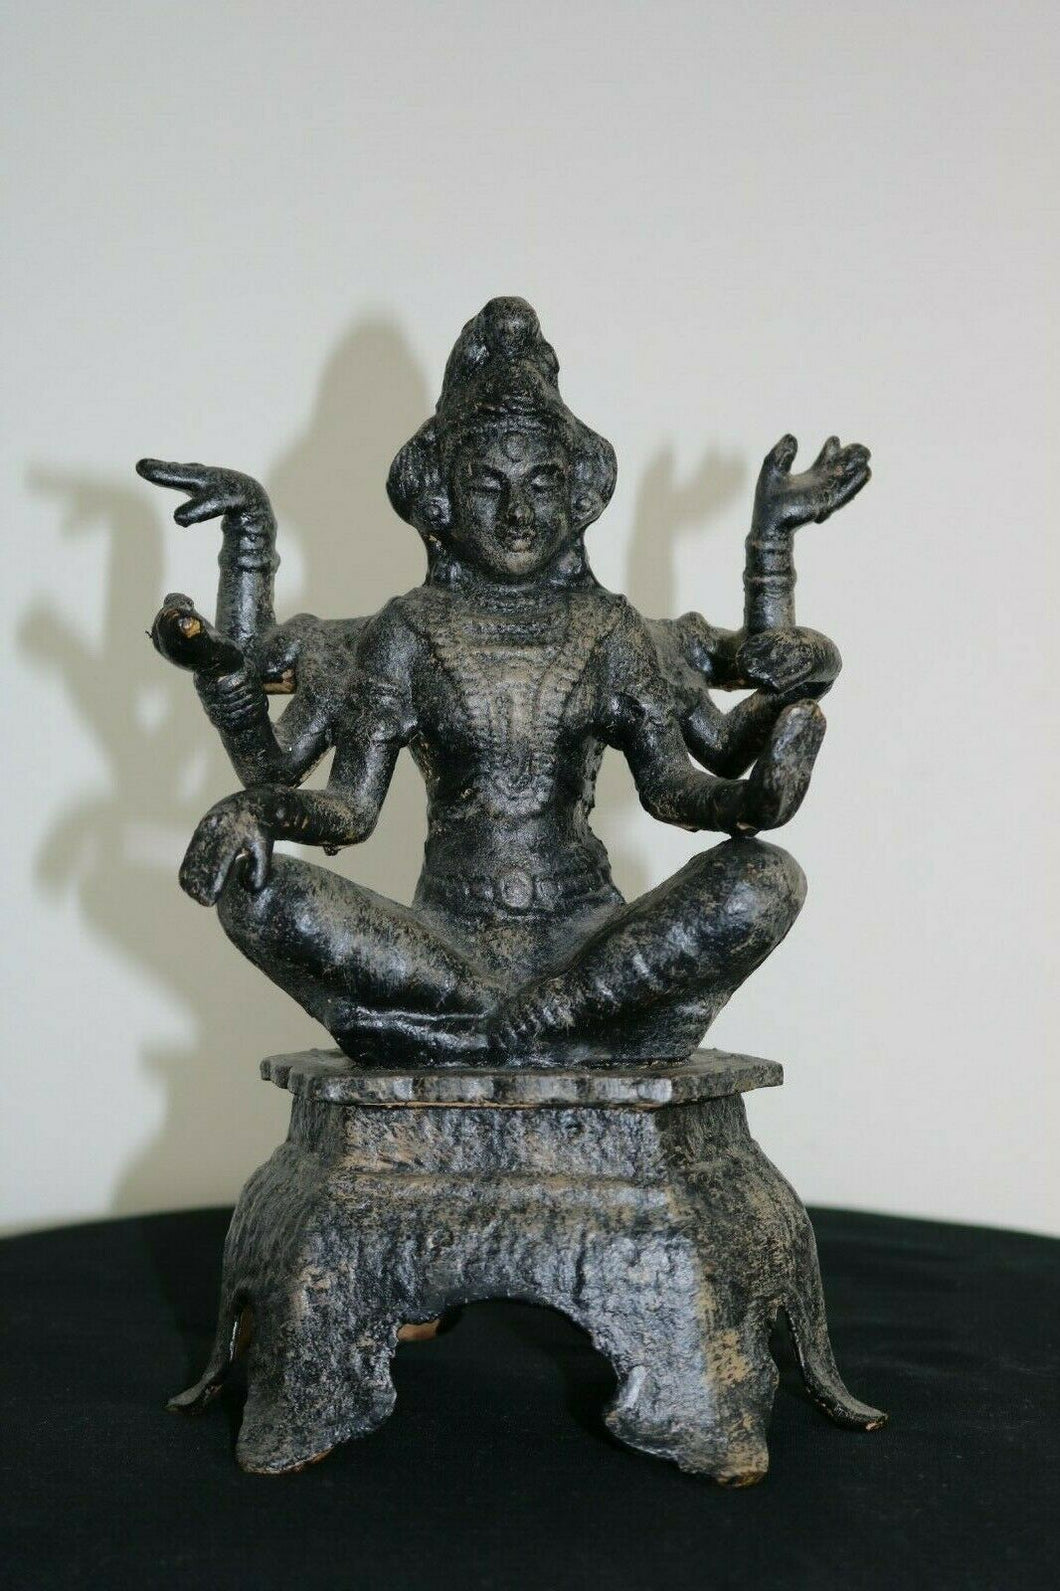 Antique Iron Kali Ma 6 Arm Buddha Figure - NEPAL Or TIBETAN | Pops Flea Market